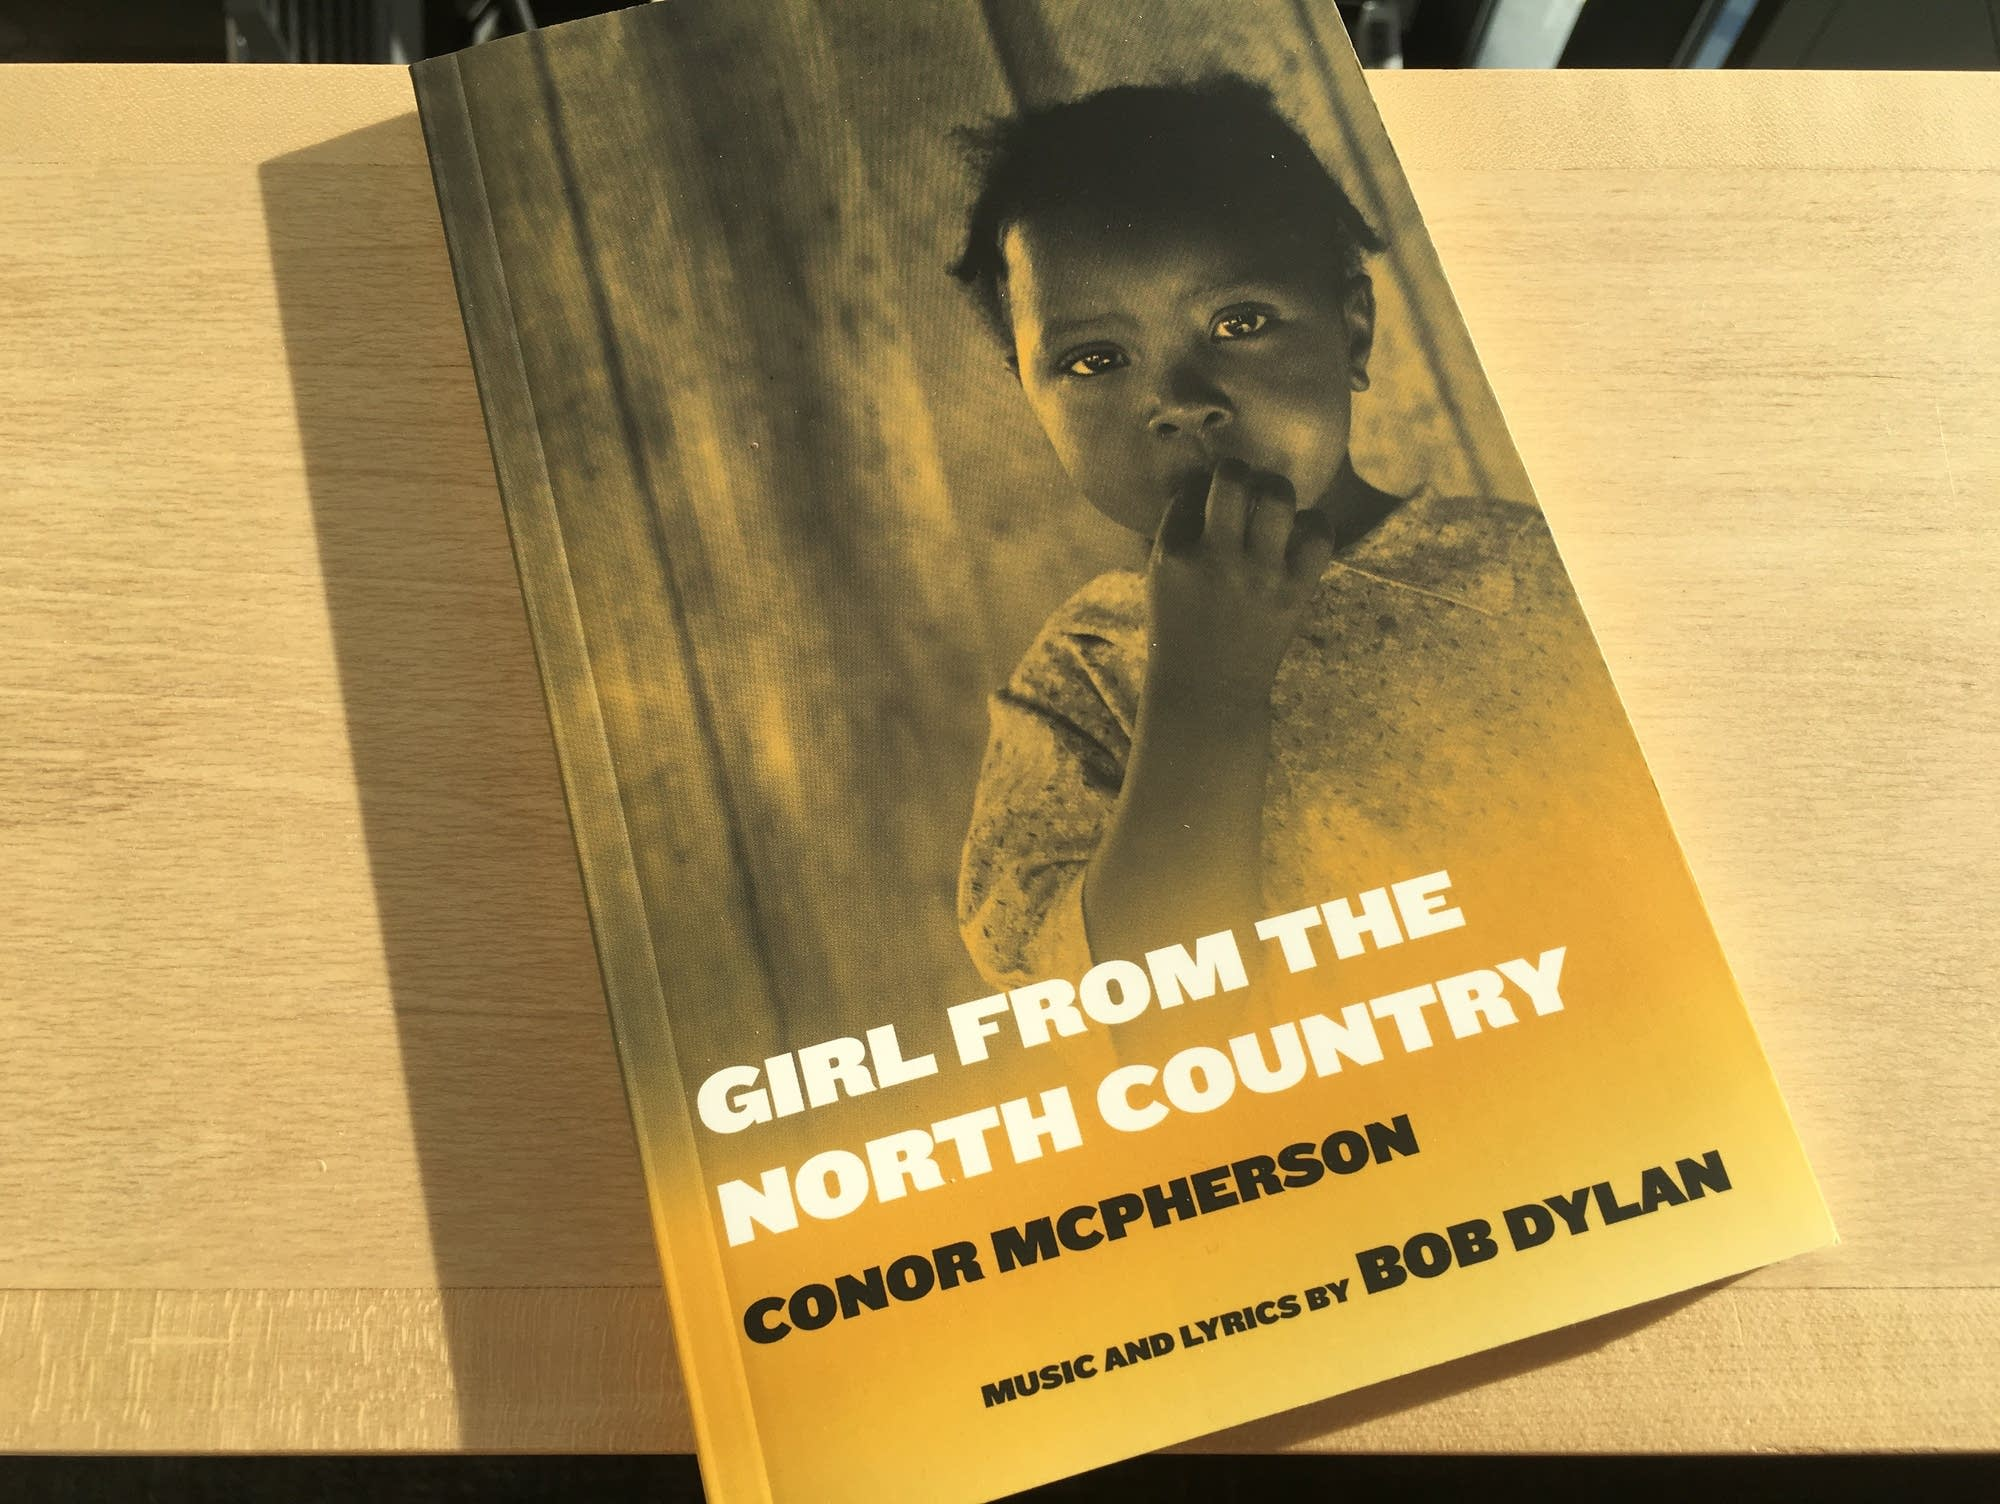 Conor McPherson's 'Girl from the North Country.'